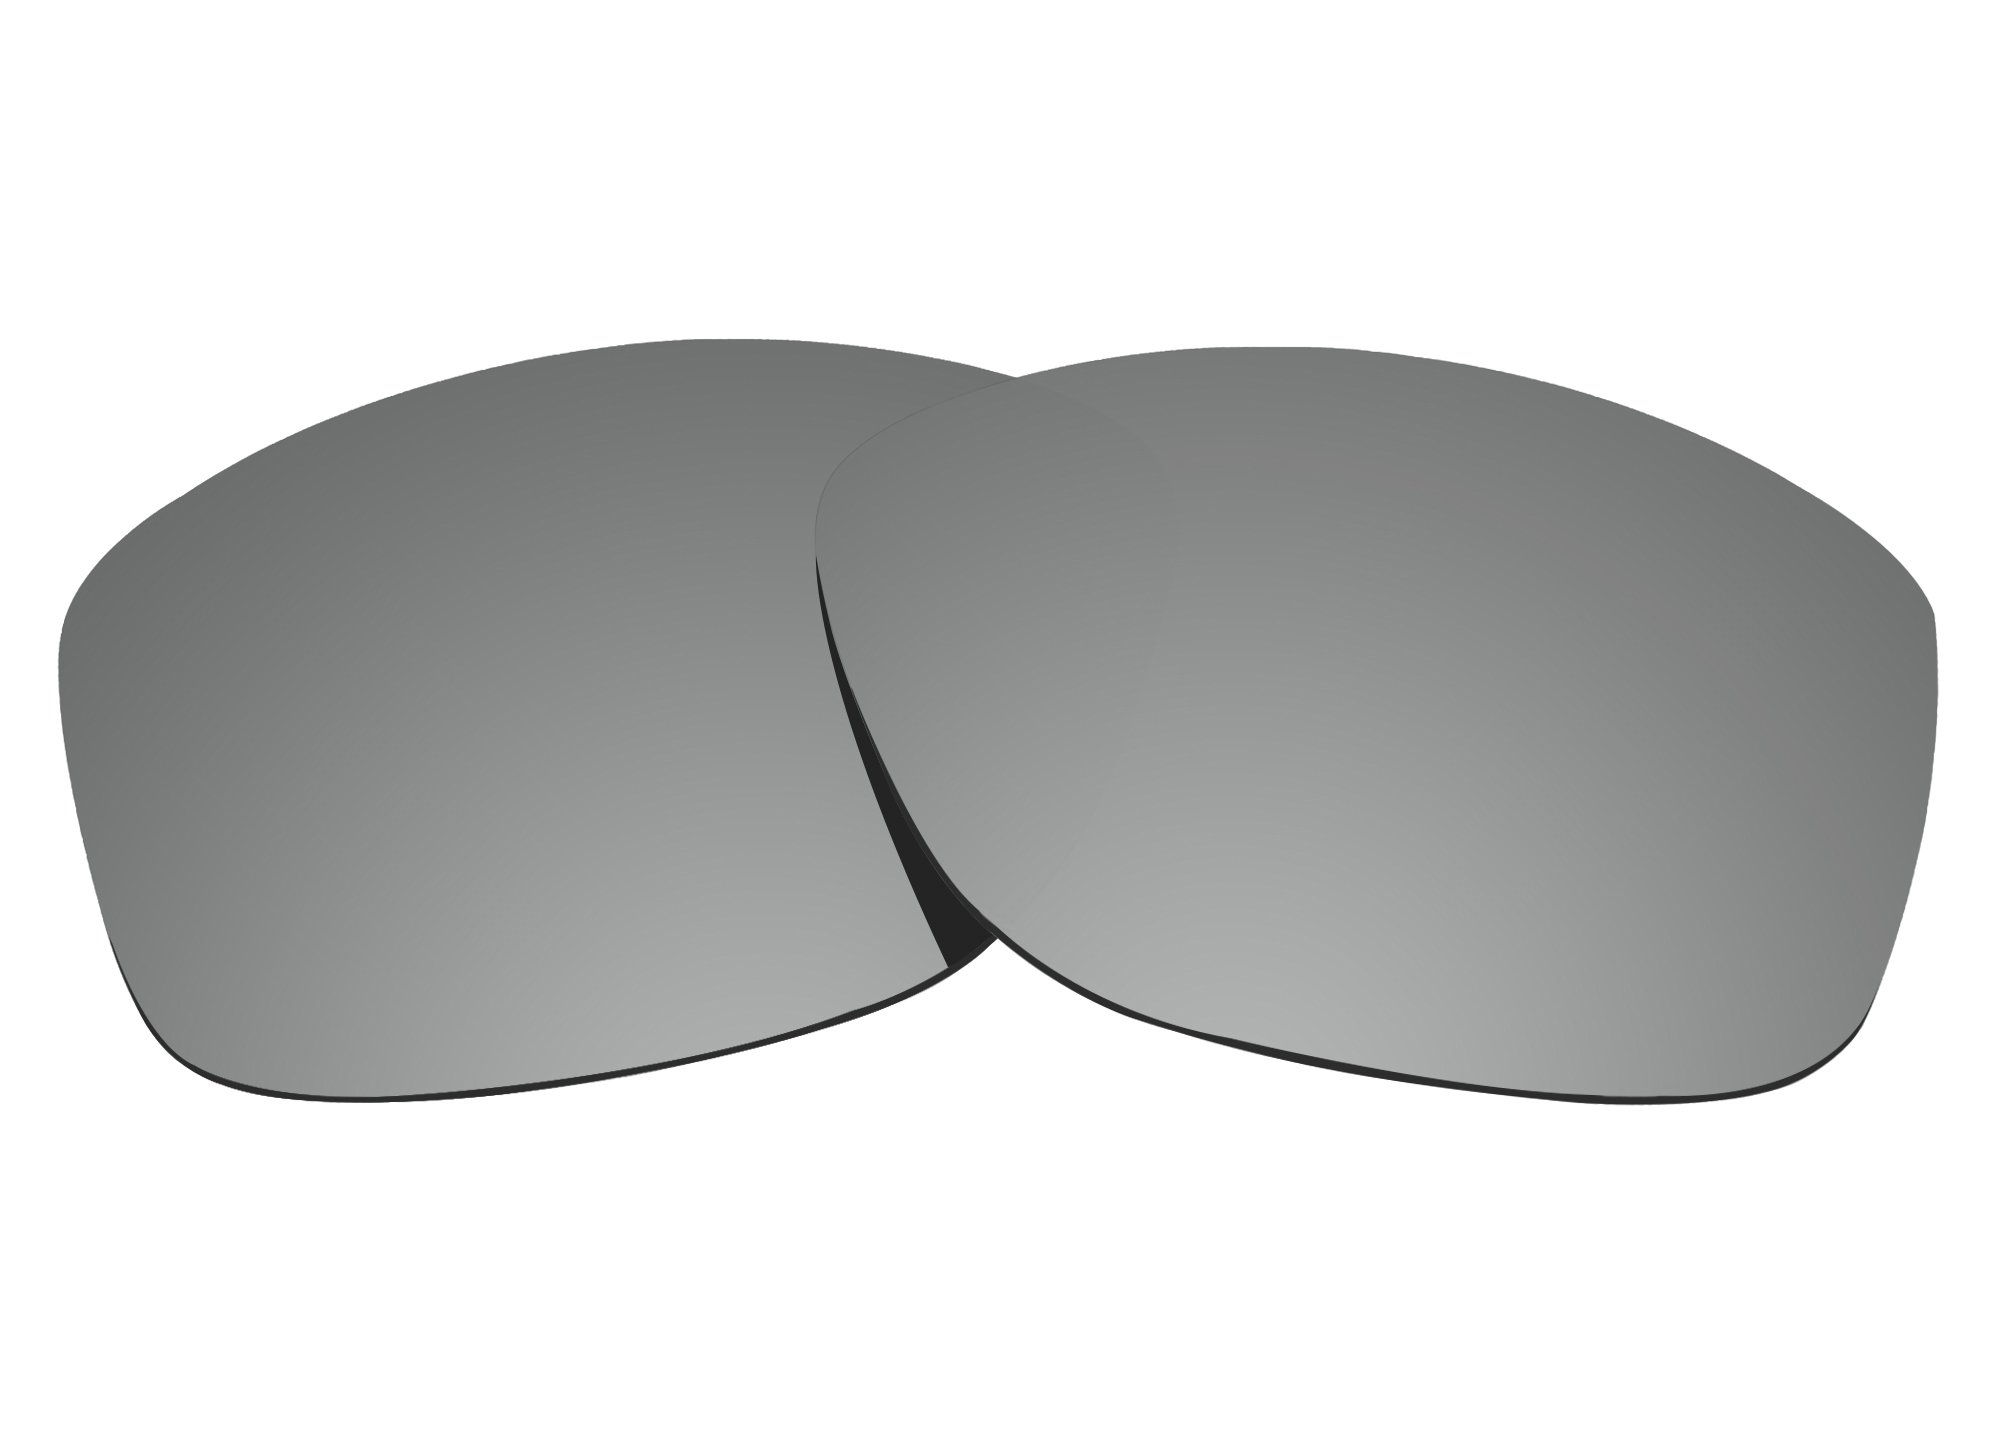 f435086838 Get Quotations · COLOR STAY LENSES 2.0mm Thickness Polarized Replacement  Lenses for Oakley Cohort OO9301 Sunglasses Titanium Mirror